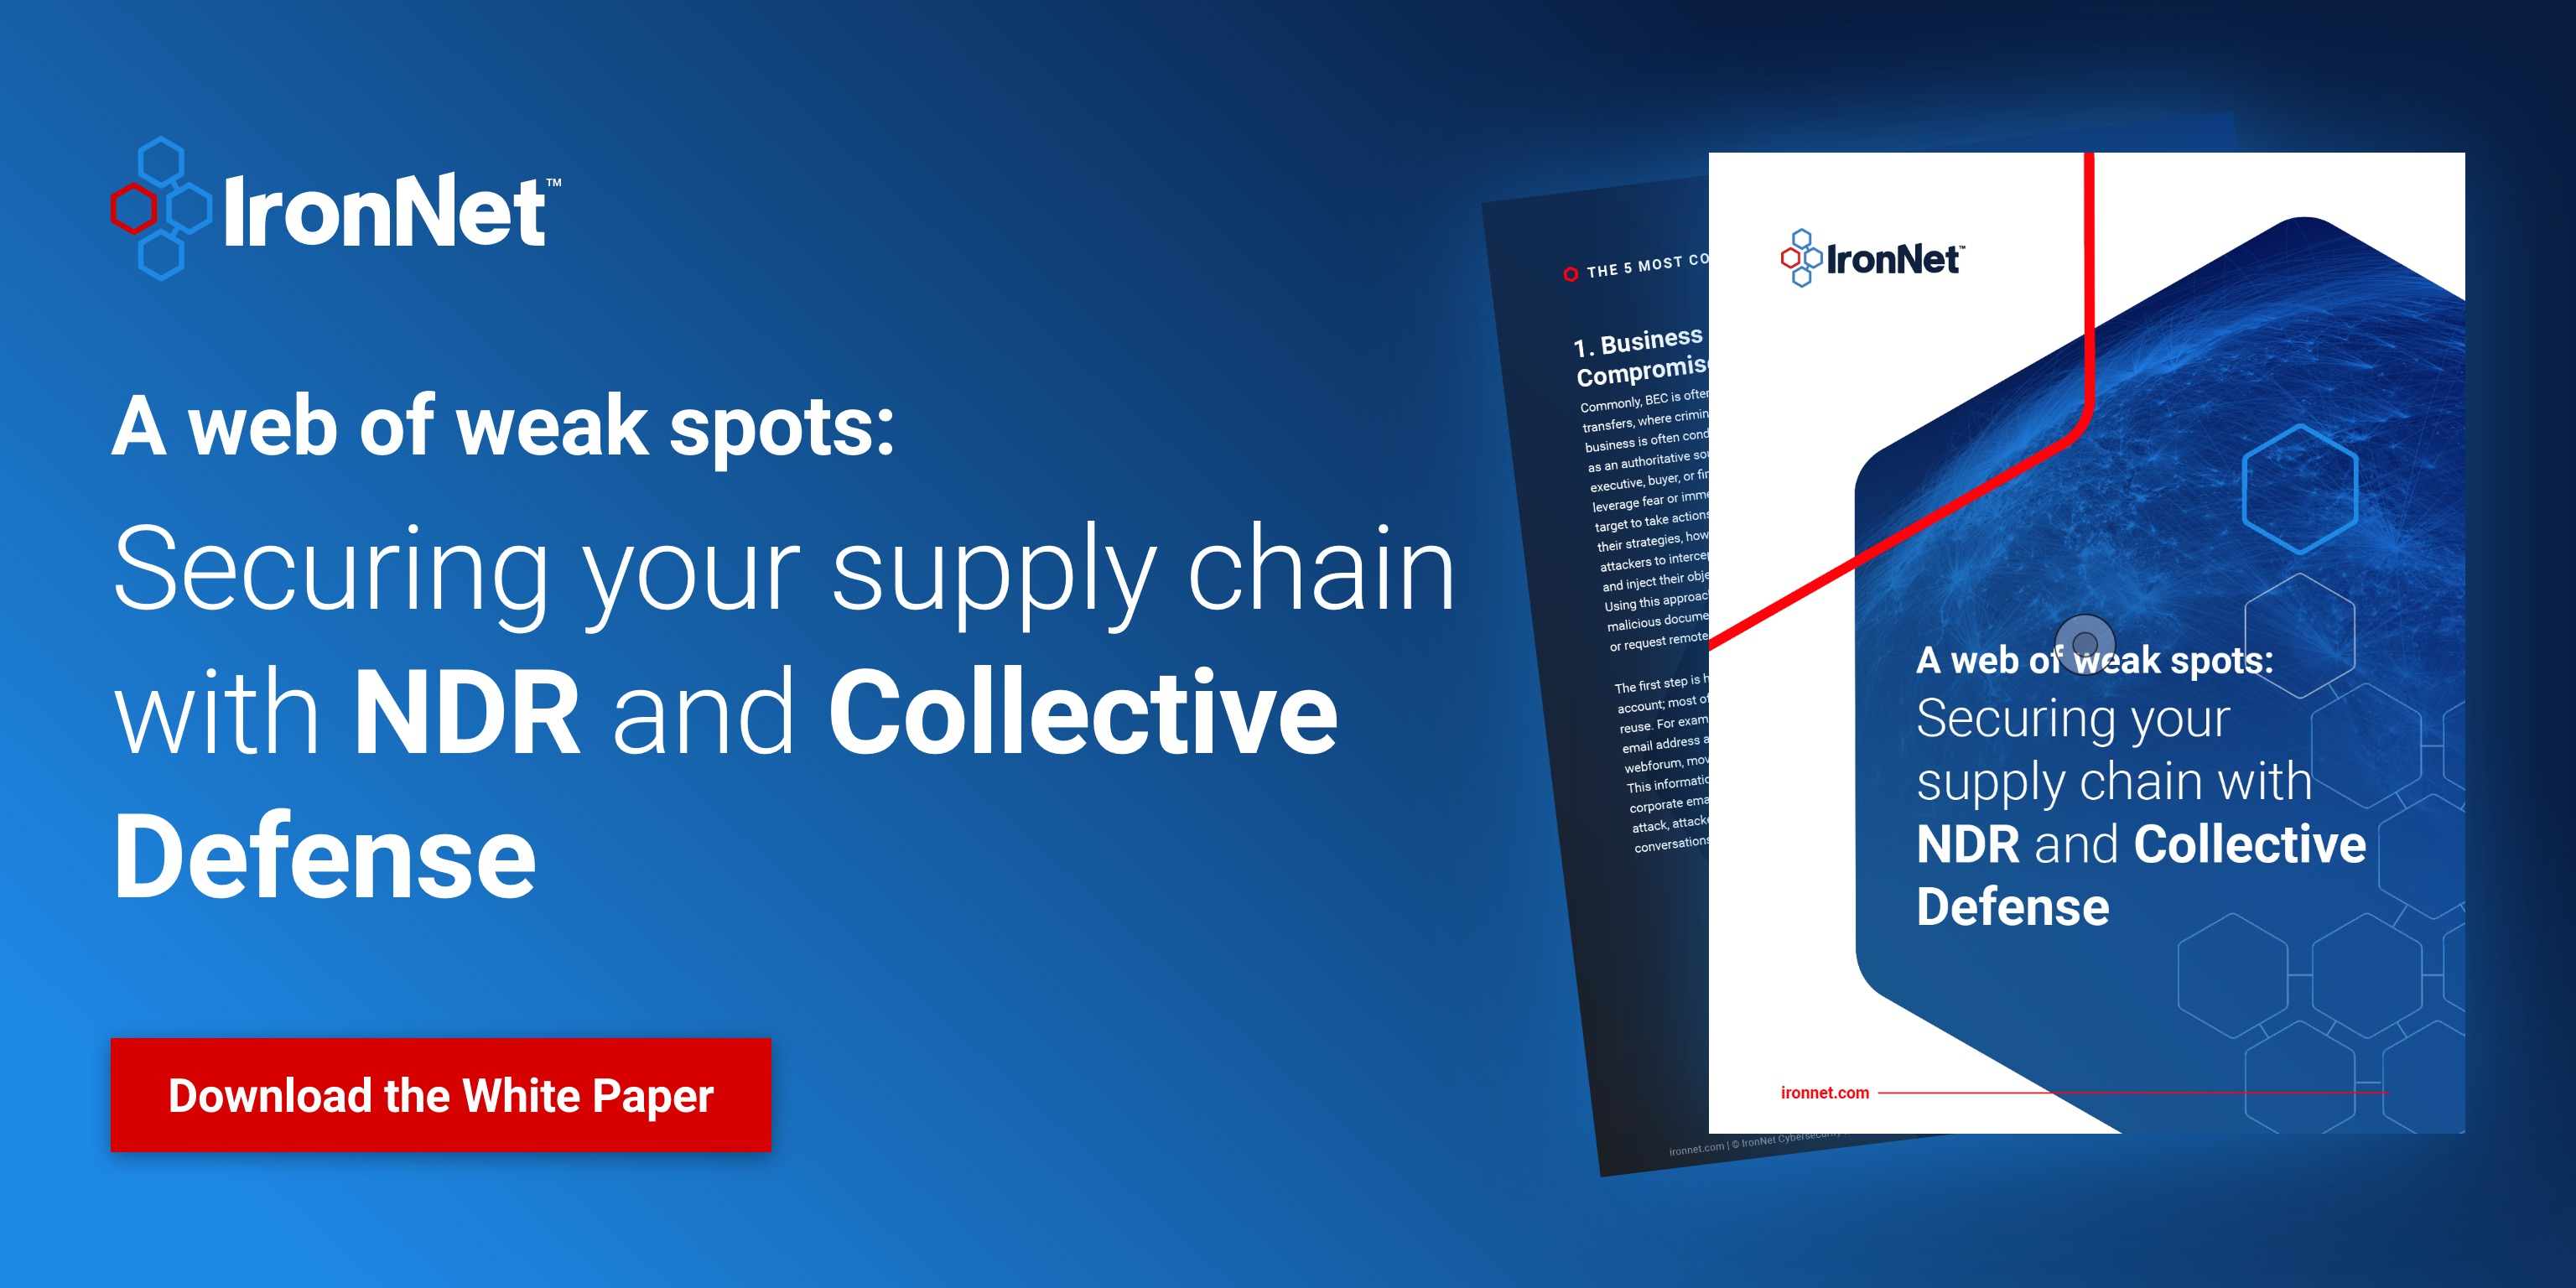 IronNet -Supply Chain Social Images  - Option 1 - LinkedIn@2x